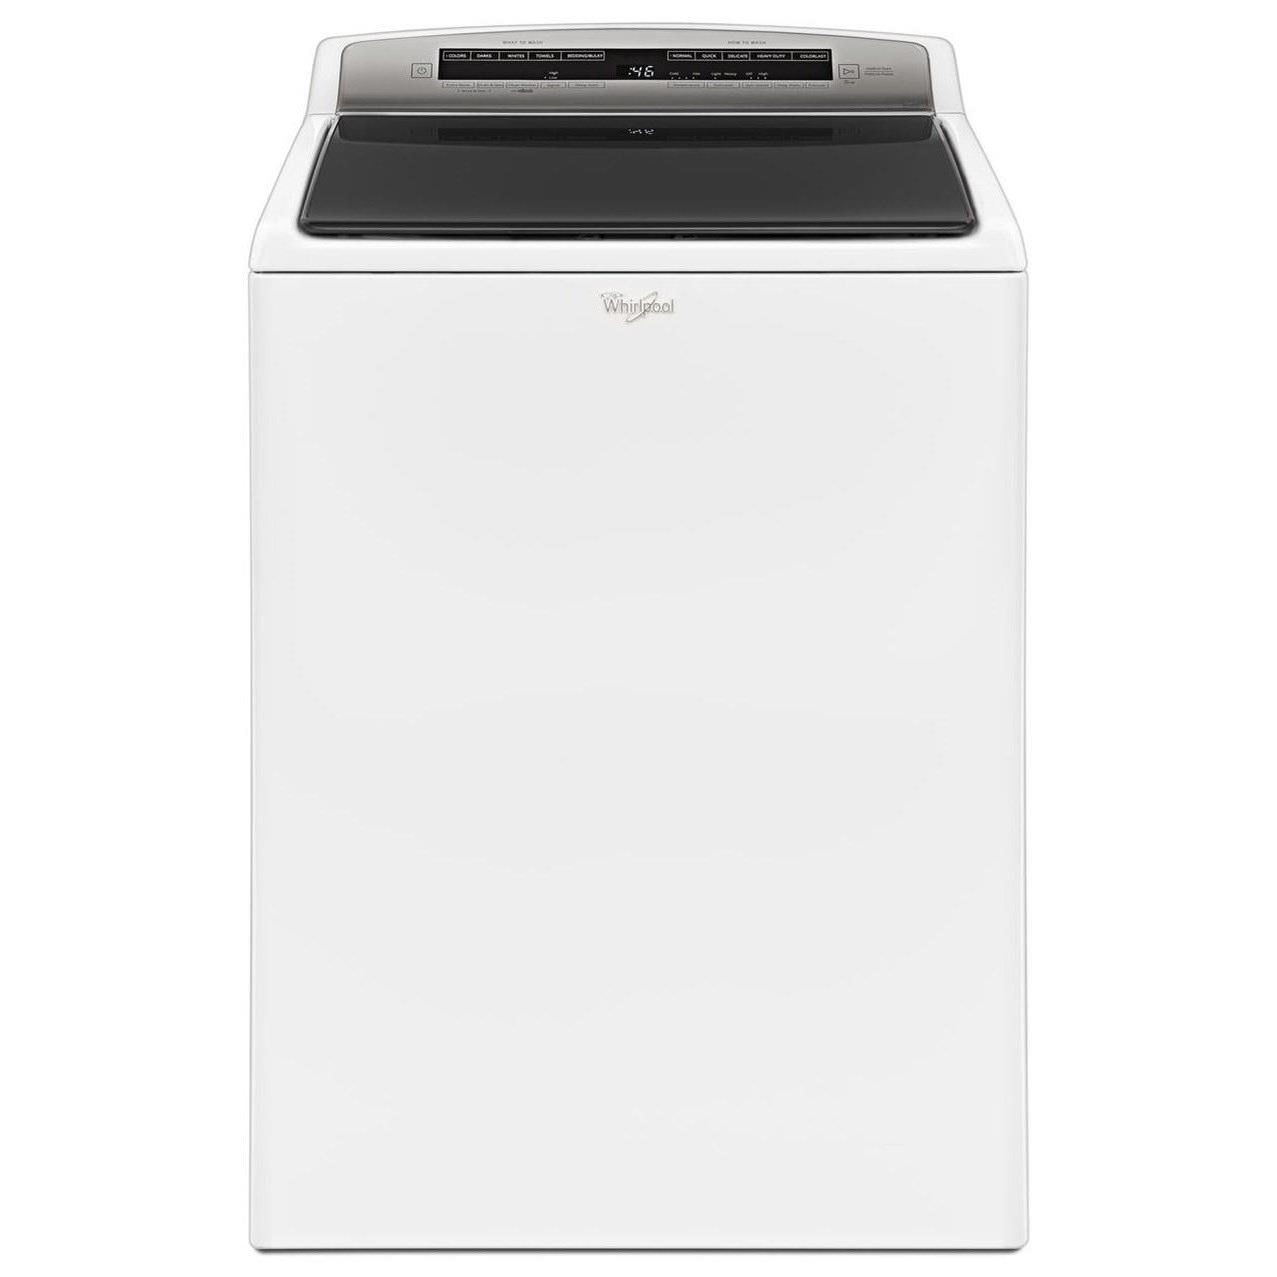 Whirlpool 4 8 Cu Ft He Top Load Washer With Water Faucet